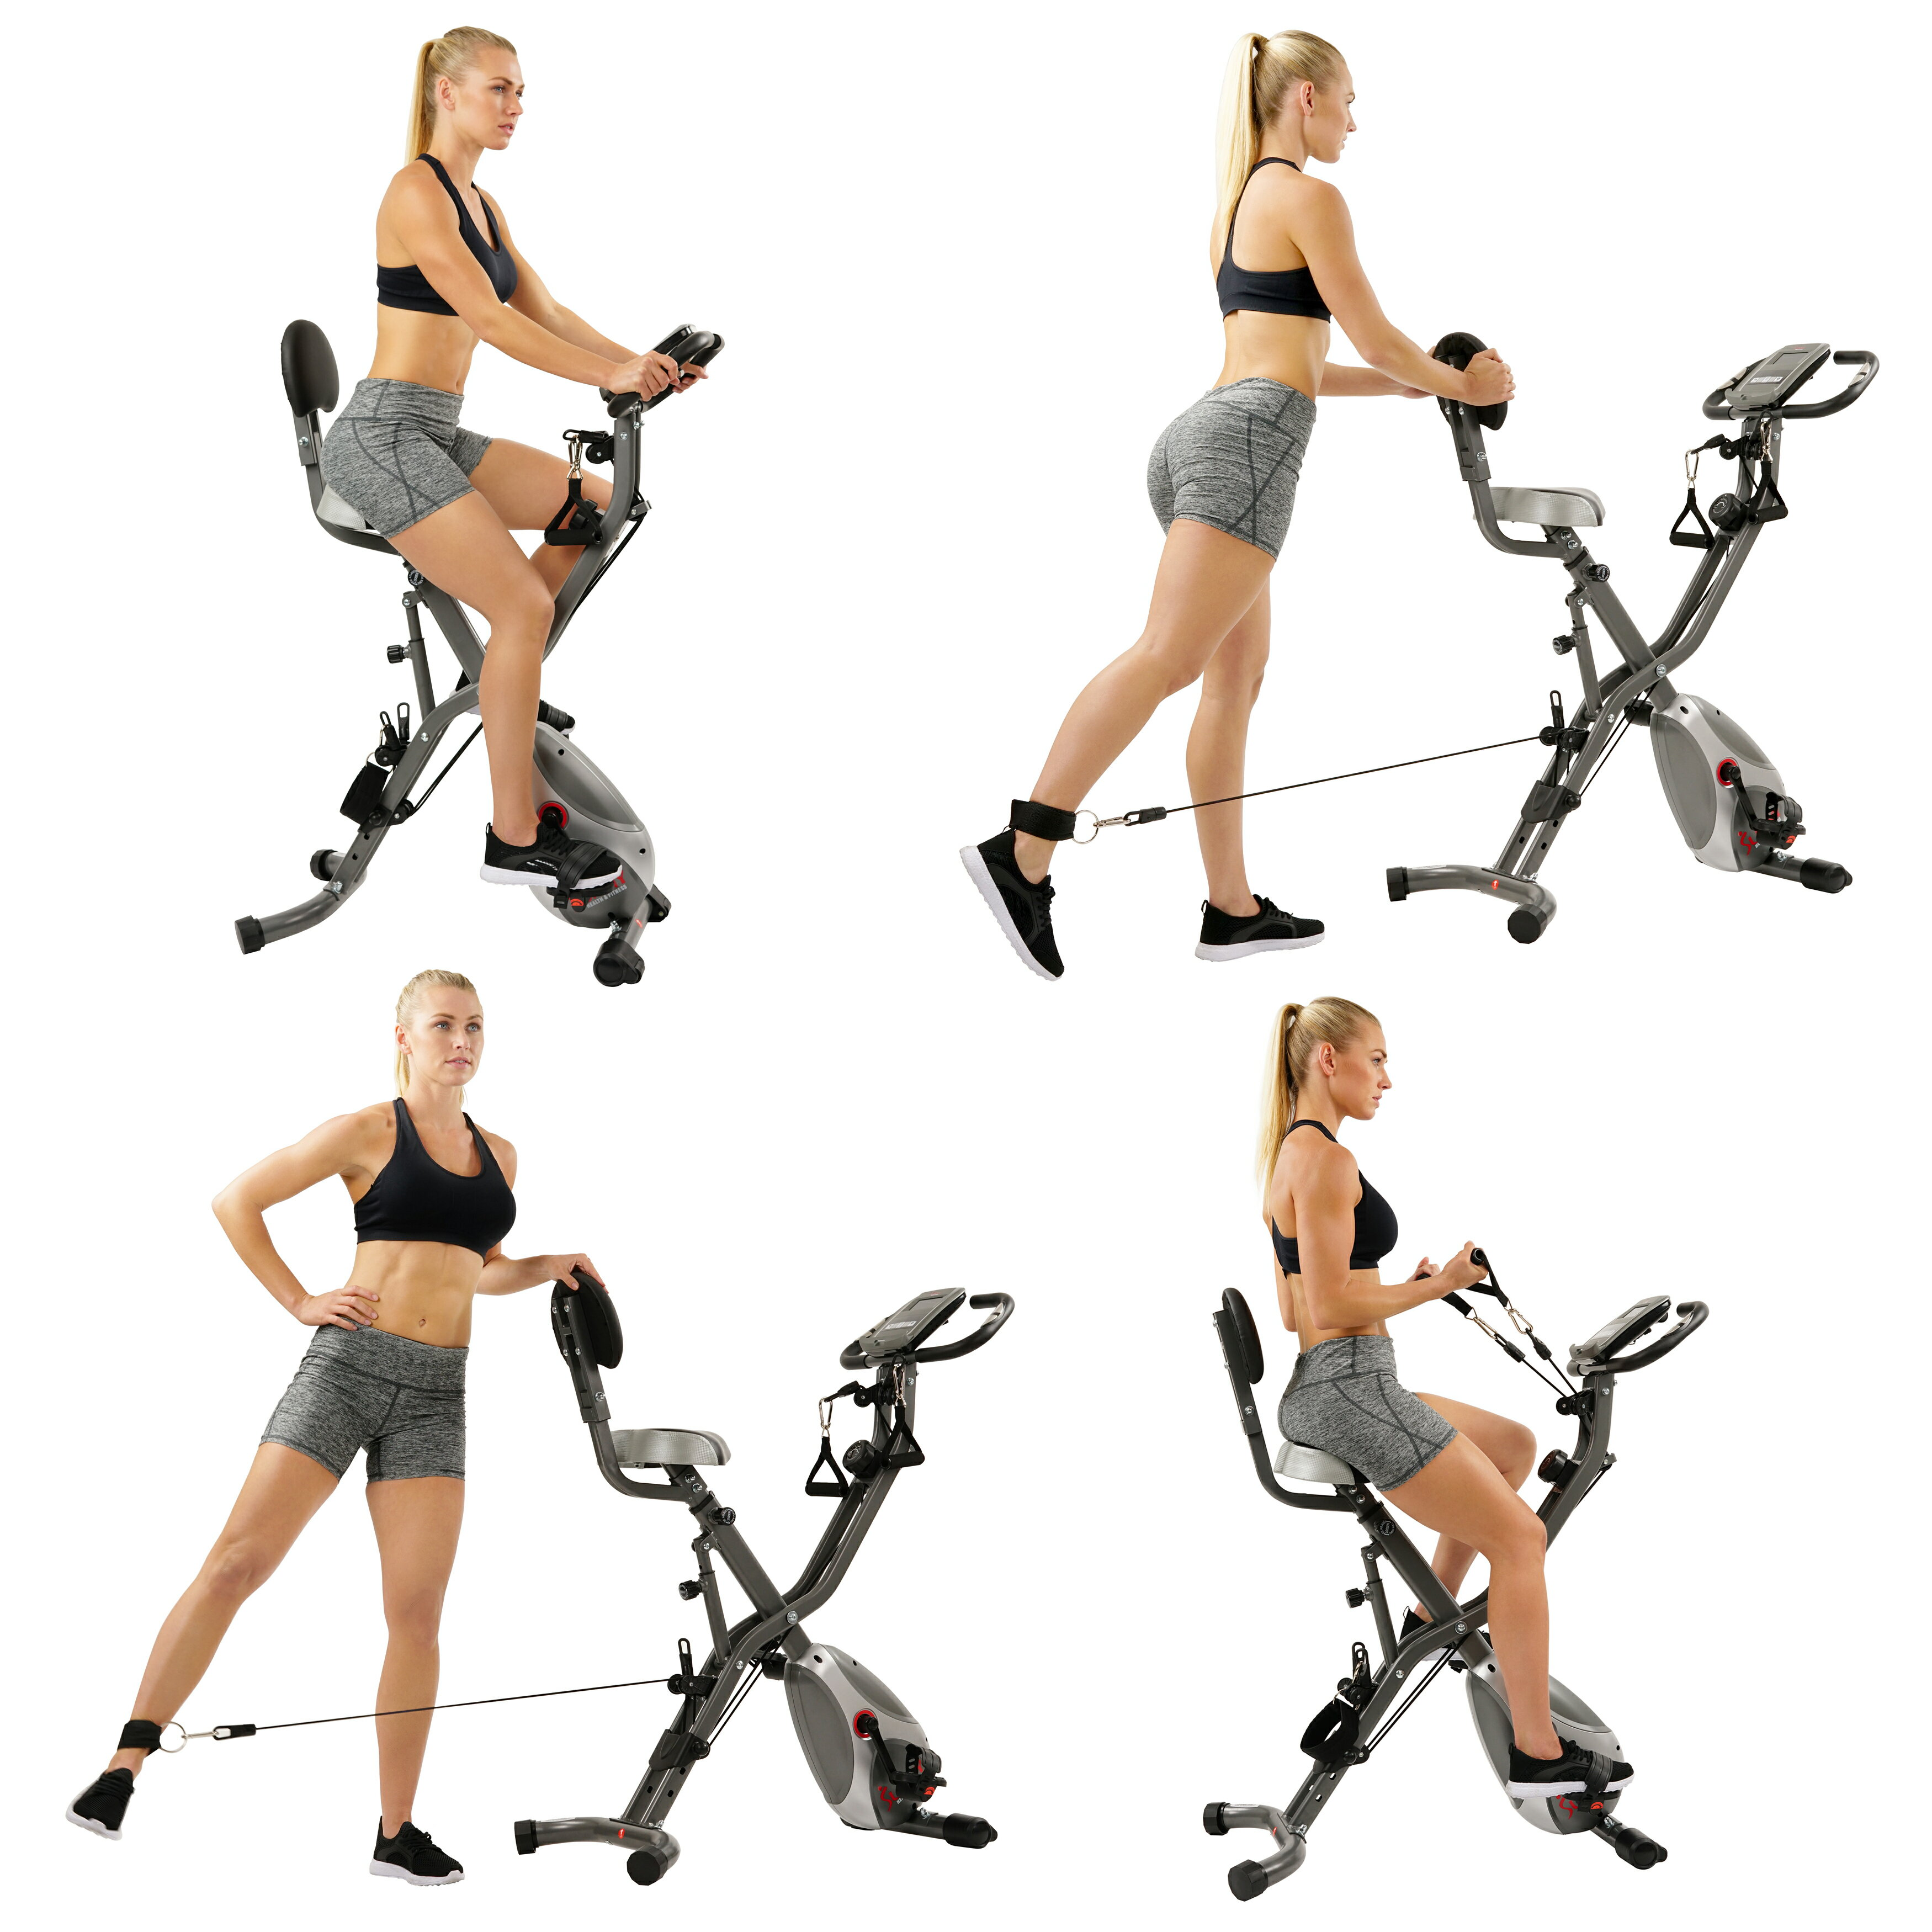 Sunny Health & Fitness Foldable Semi Recumbent Magnetic Upright Exercise Bike w/ Pulse Rate Monitoring, Adjustable Arm Resistance Bands and LCD Monitor - SF-B2710 5